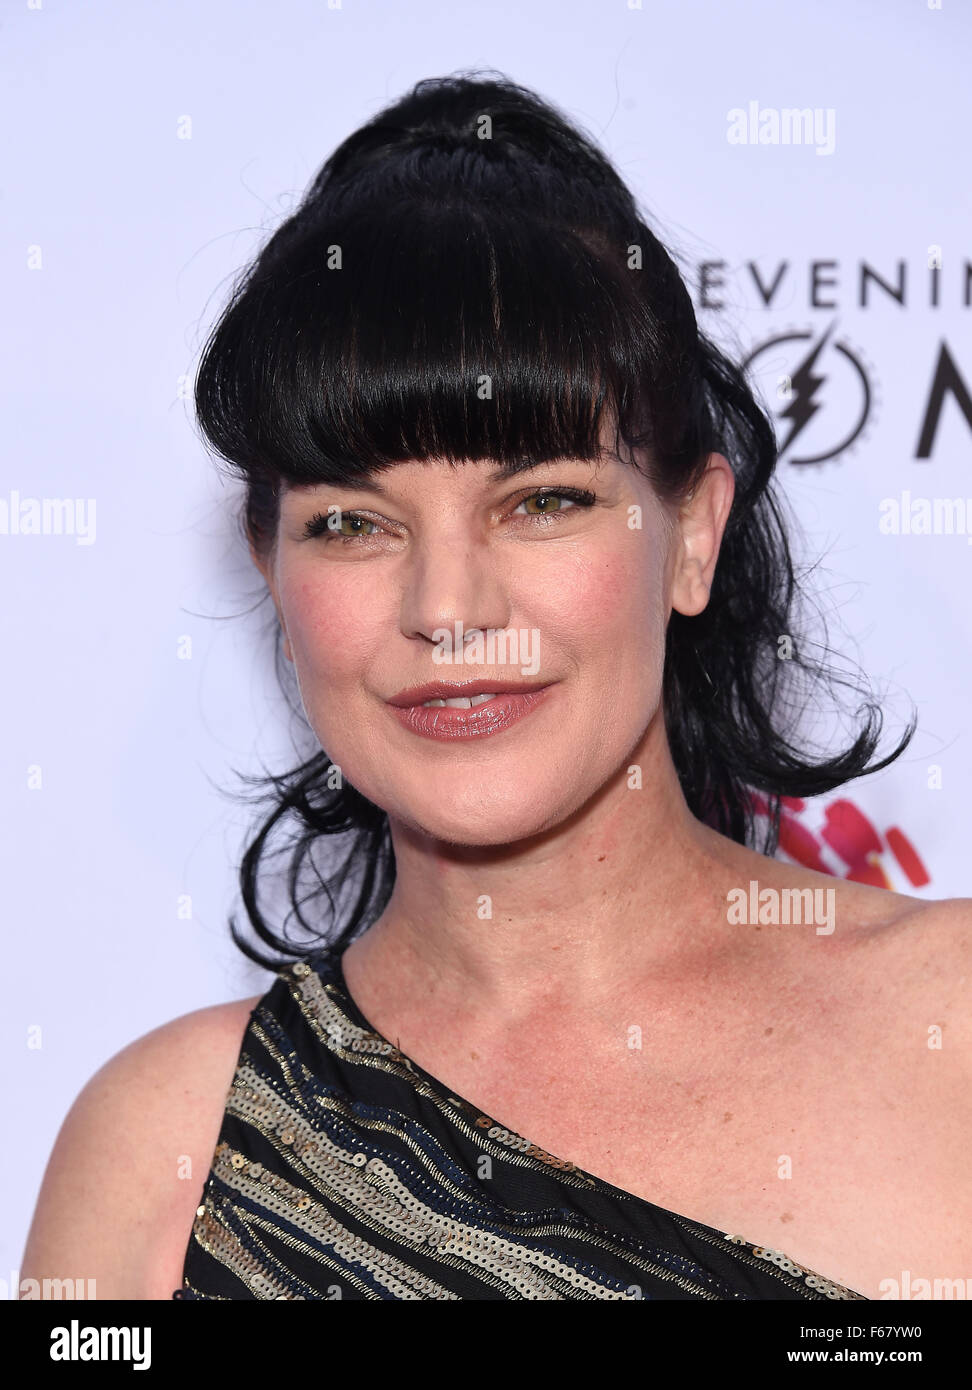 Pauley perrette abby sciuto think